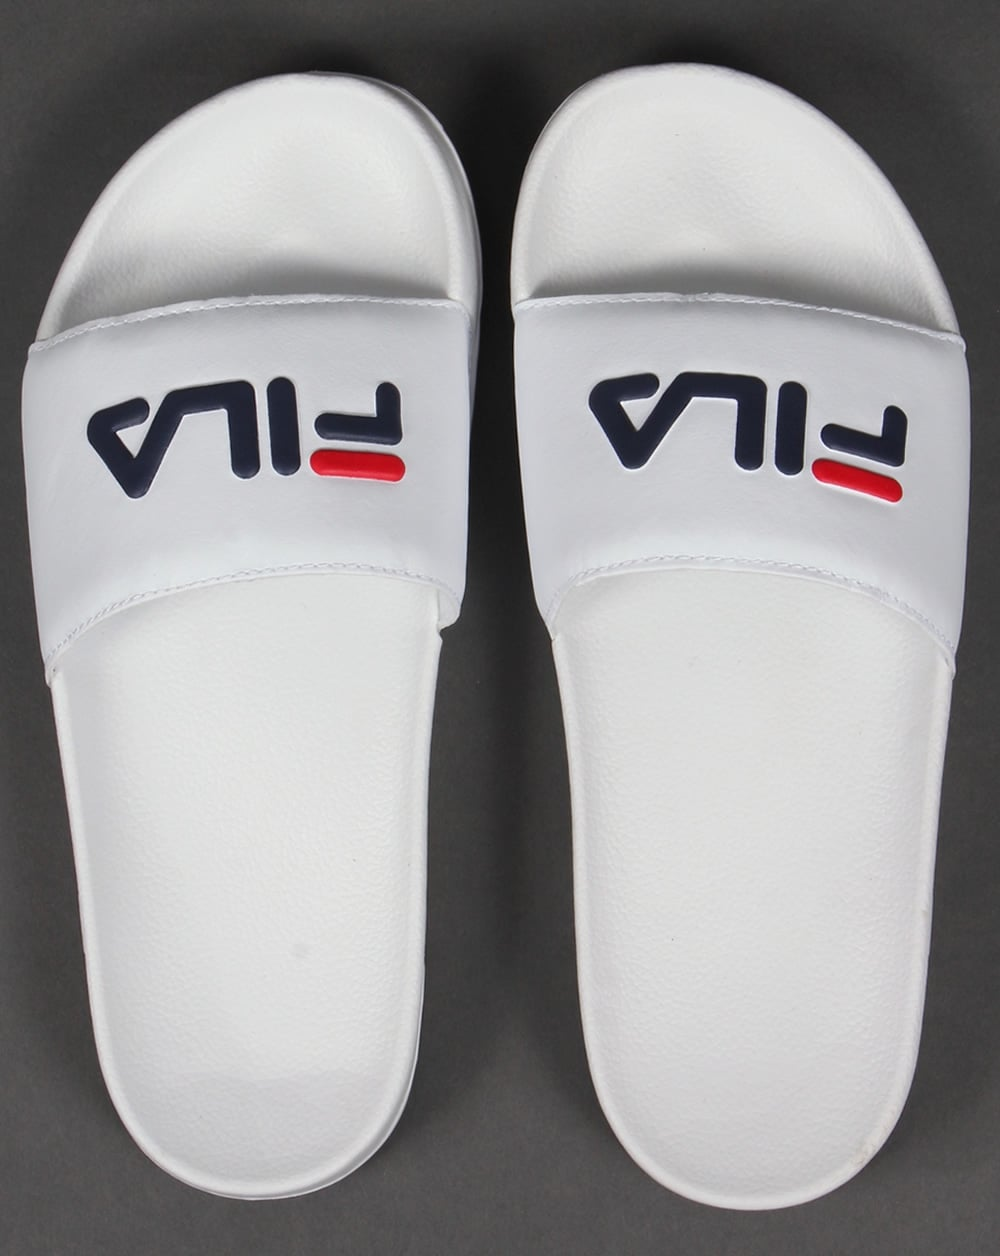 Fila Vintage Drifter Pool Sliders White,sandals,flip flops